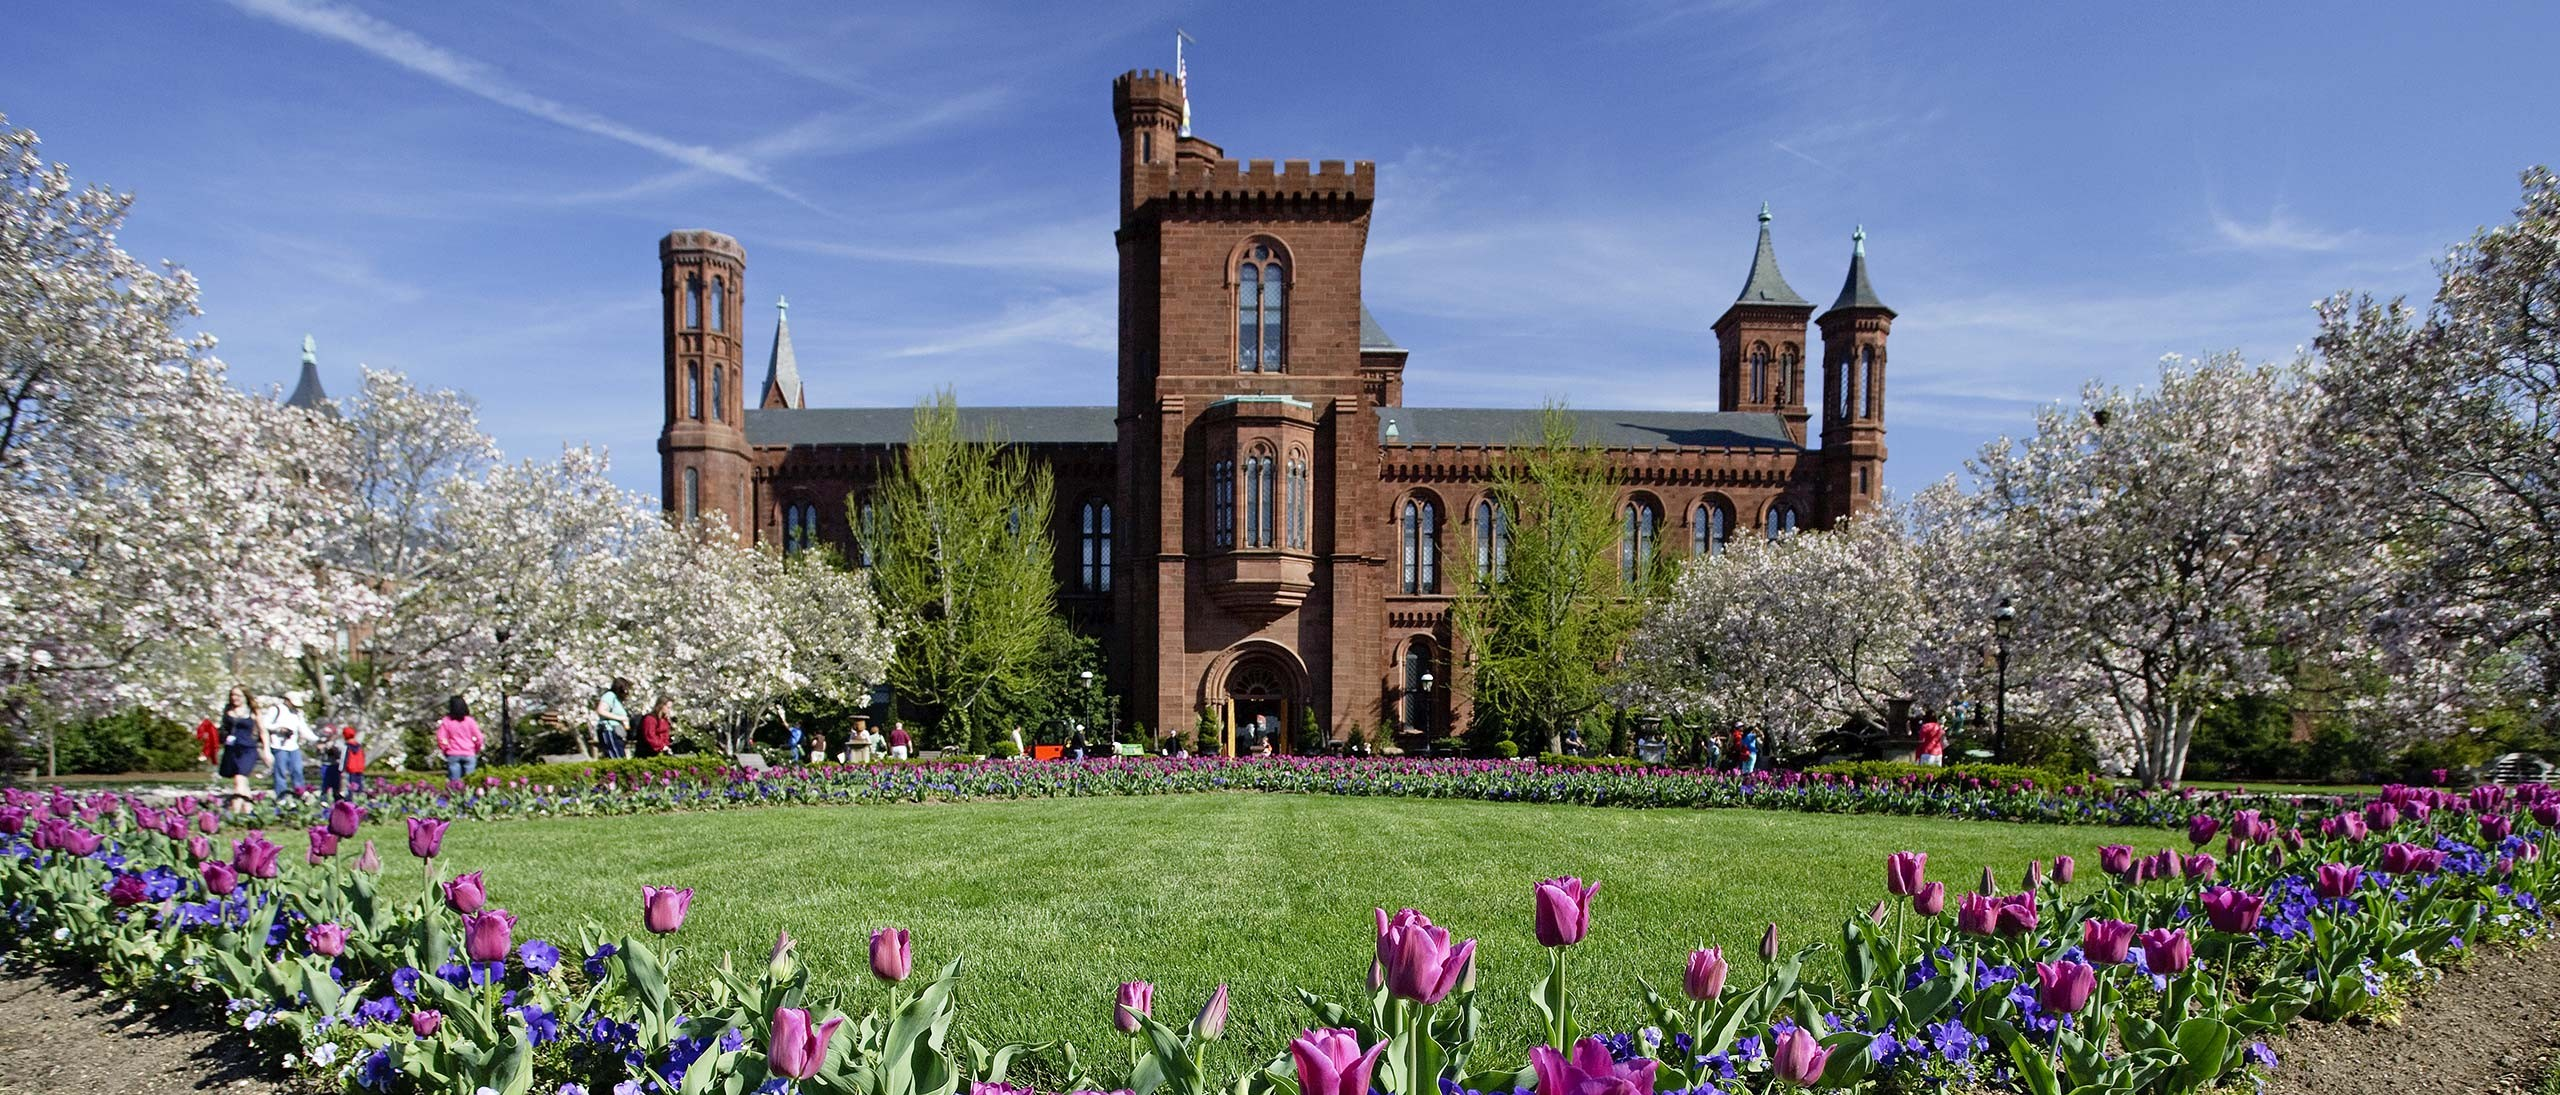 Purple tulips and blue pansies planted in a diamond pattern in the lawn and pink-blooming magnolia trees with red-stone Smithsonian Castle behind